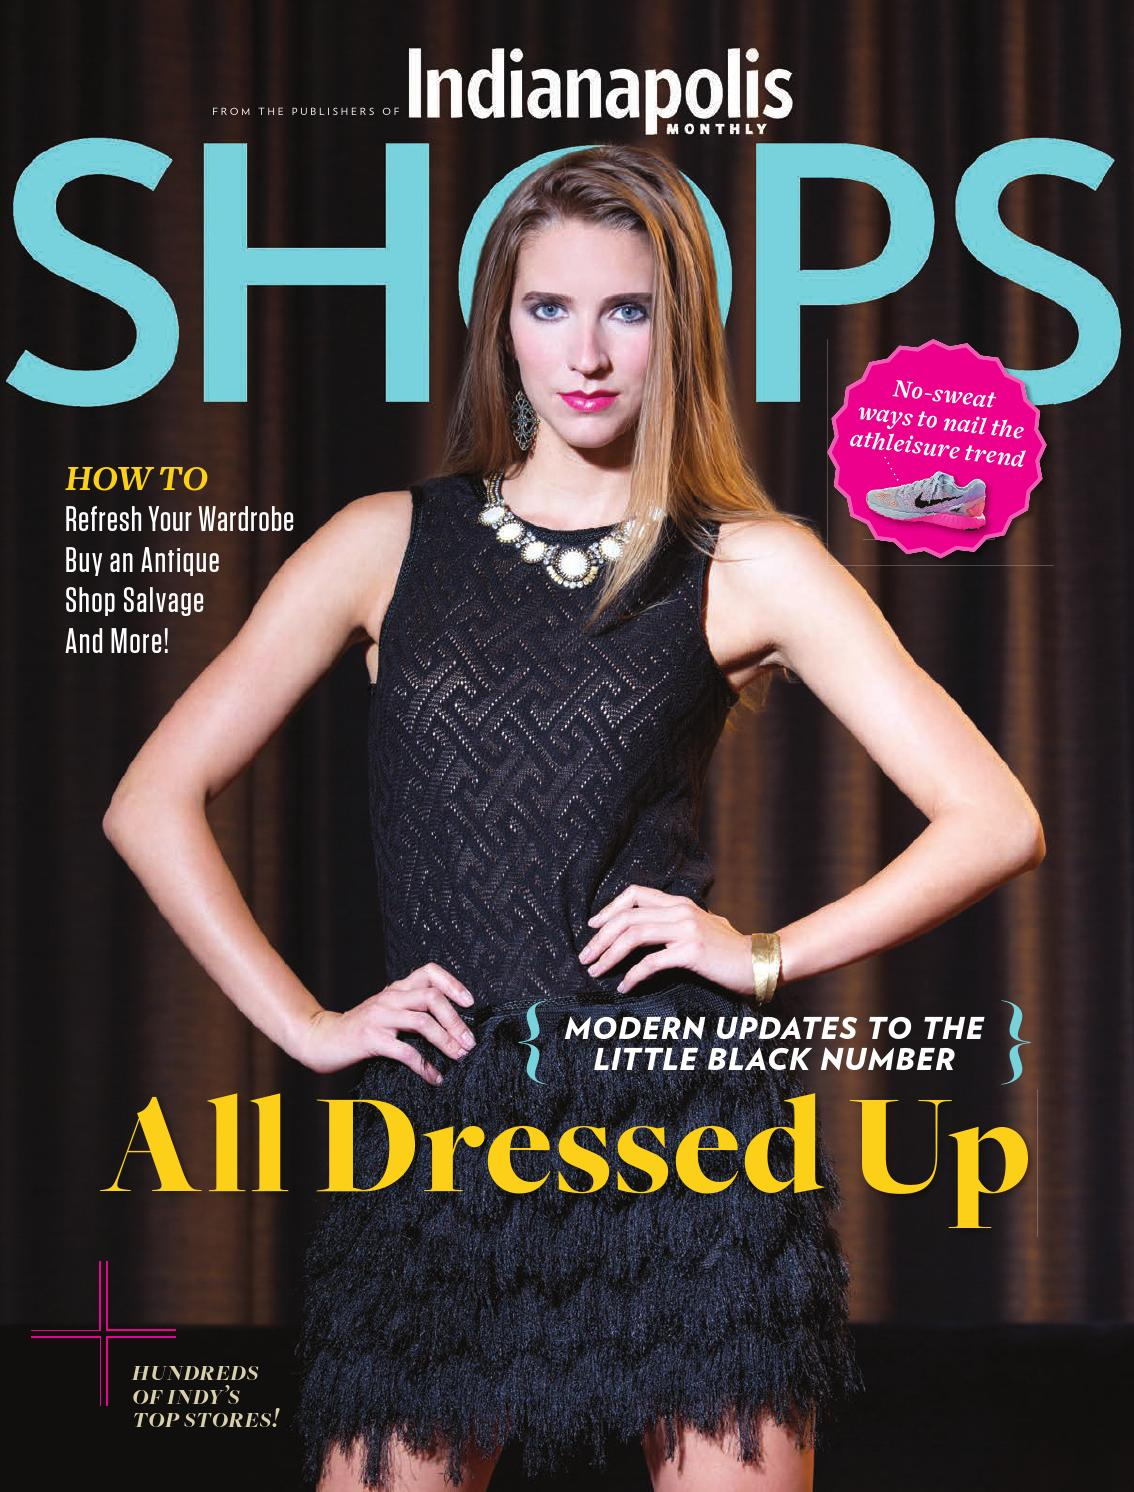 a36da06933c Indianapolis Monthly 2015 Shops by Indianapolis Monthly - issuu